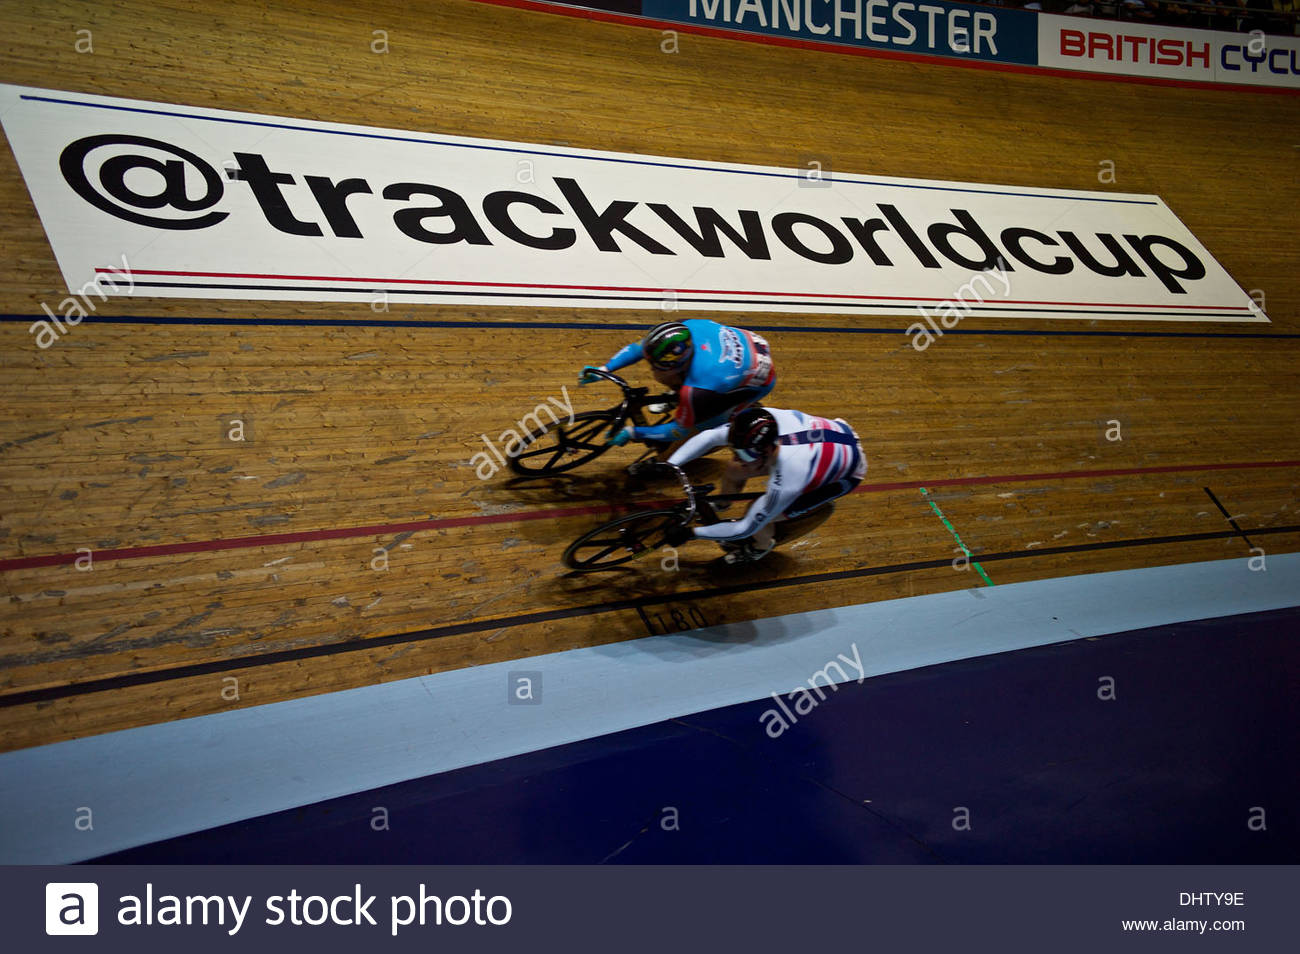 Manchester, 3rd November - Cyclists in action on day three of the UCI Track Cycling World Cup in Manchester.  Stock Photo